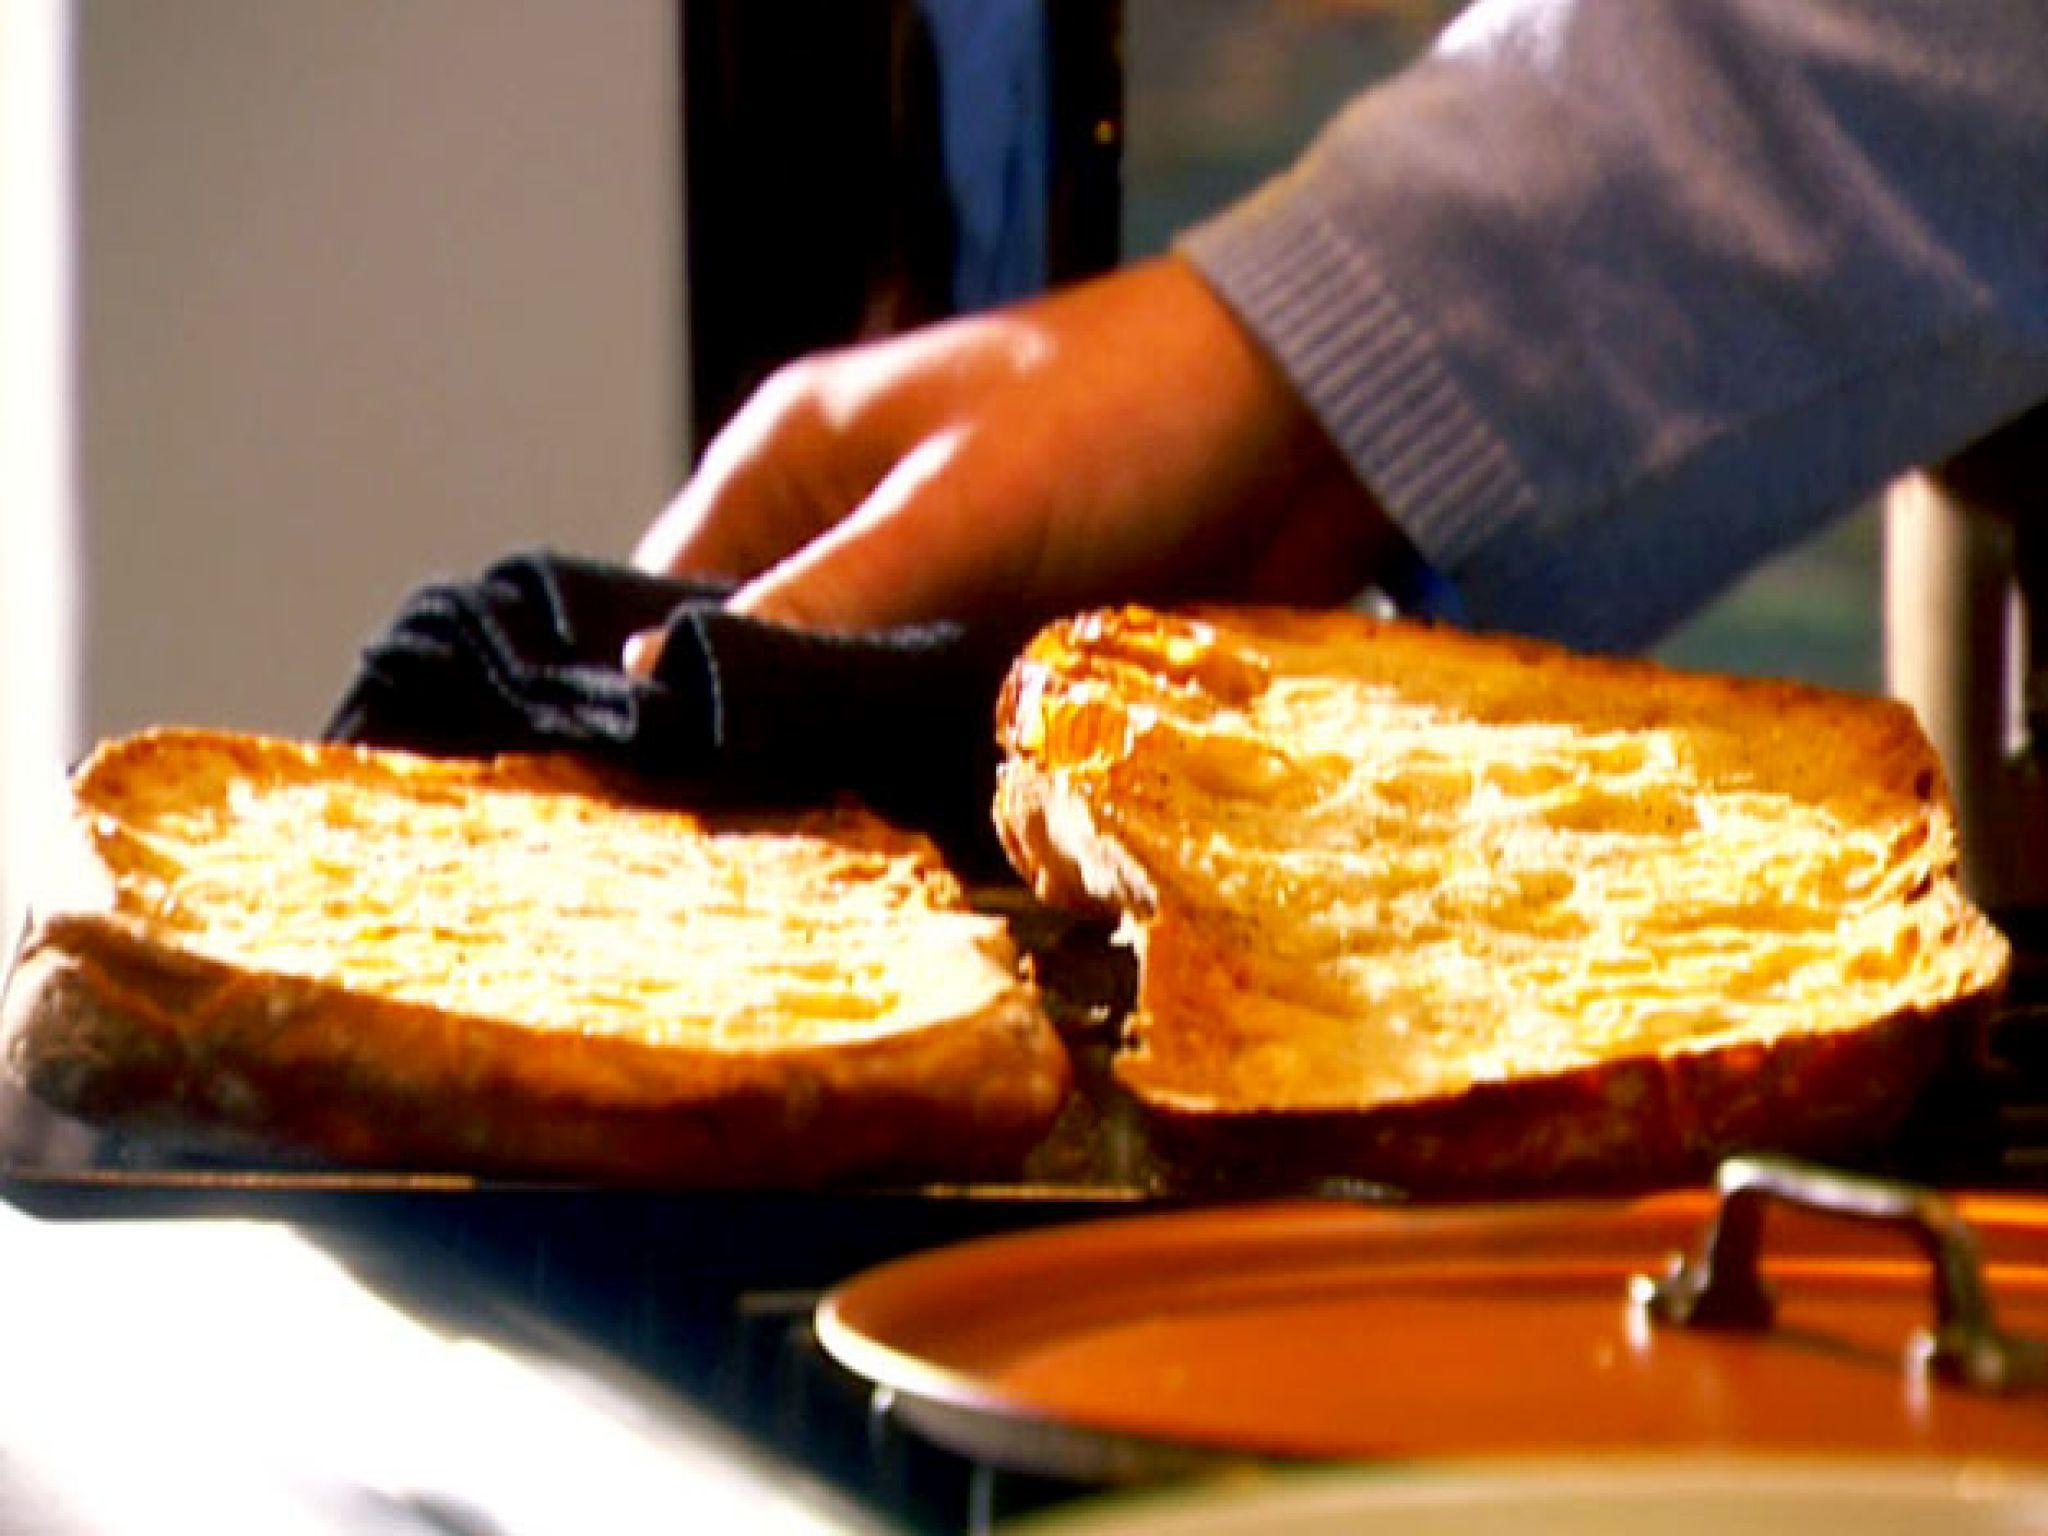 Toasted peasant bread recipe peasant bread tyler florence and toasted peasant bread cheese toast recipepeasant breadtyler florencebread recipesyummy recipesfood networktrishafall forumfinder